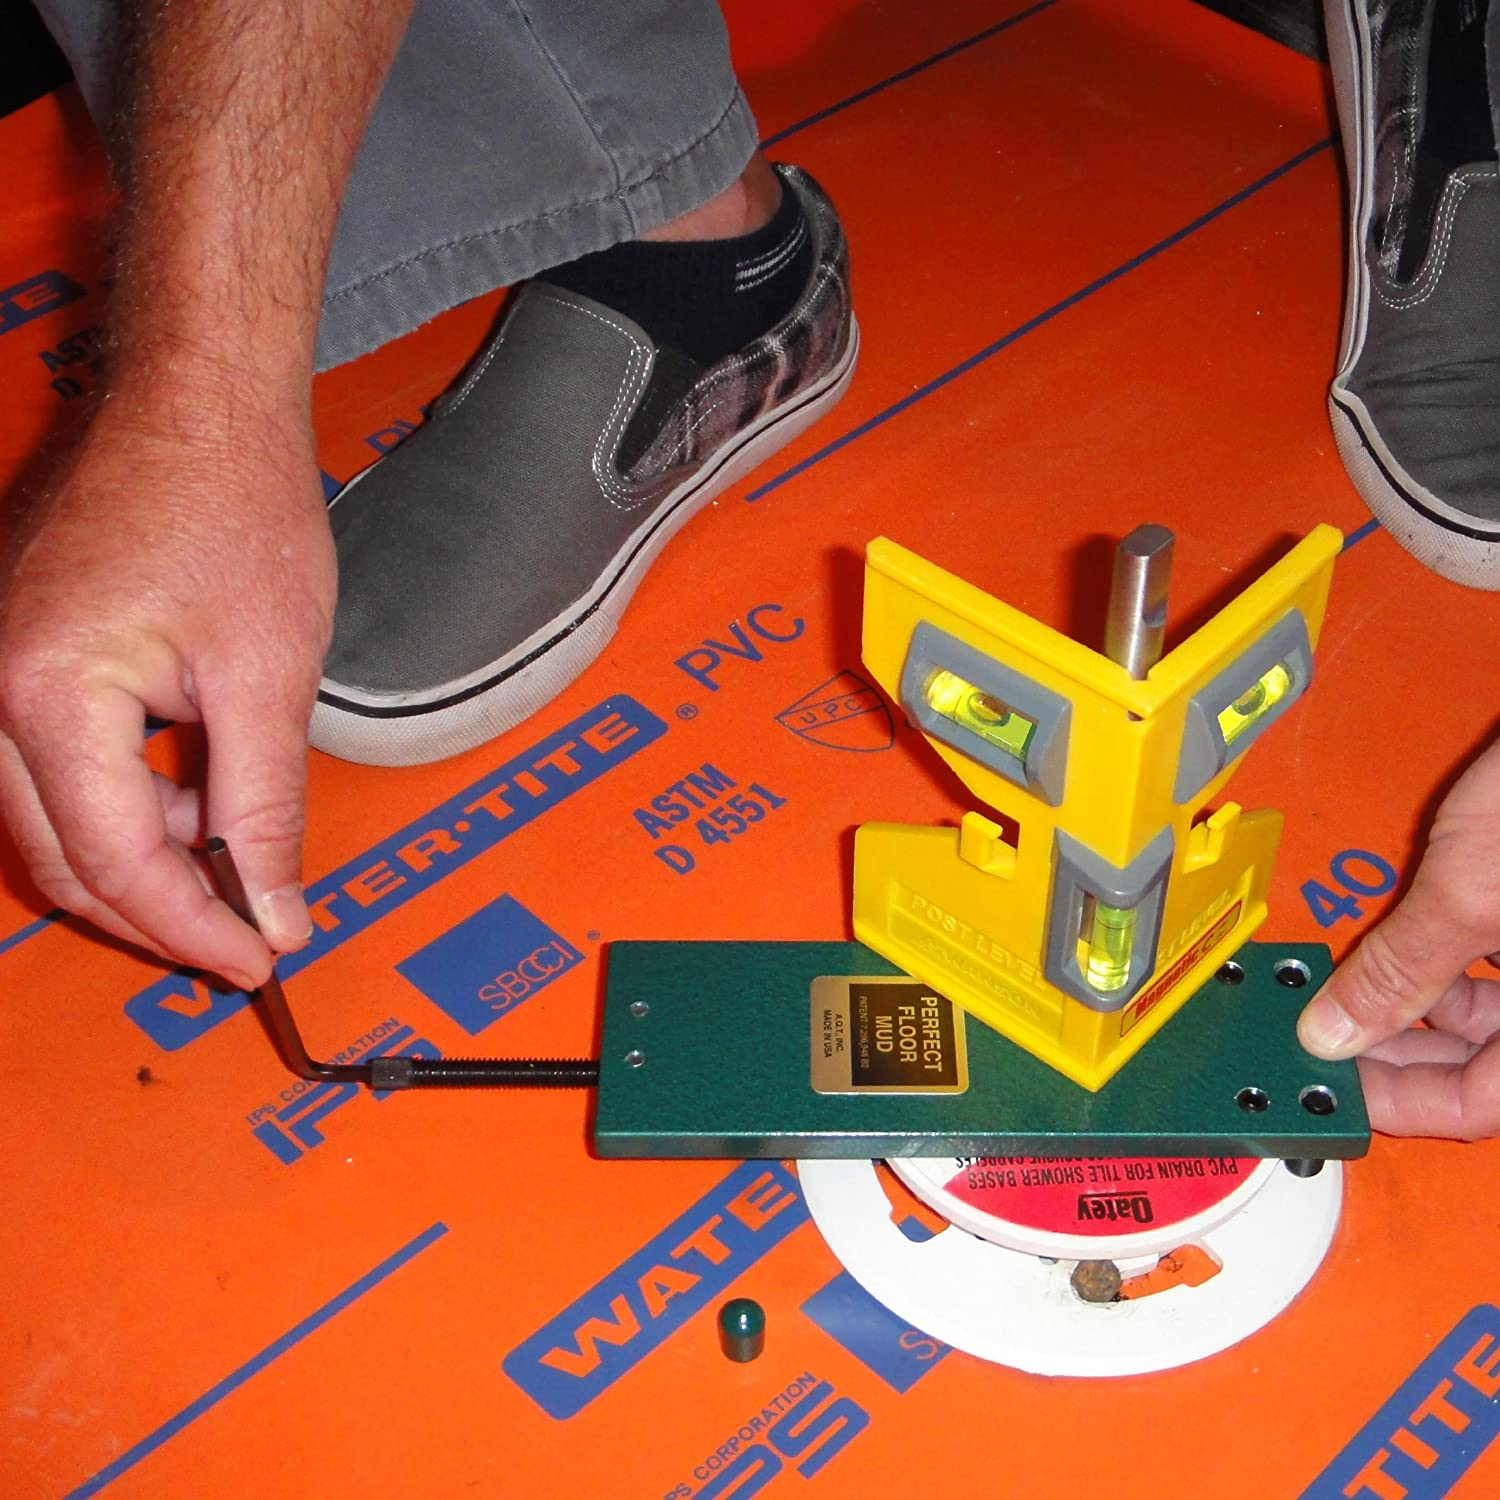 A.Q.T. Shower Floor Mud Forming Device M3a   Construction Marking Tools    Amazon.com